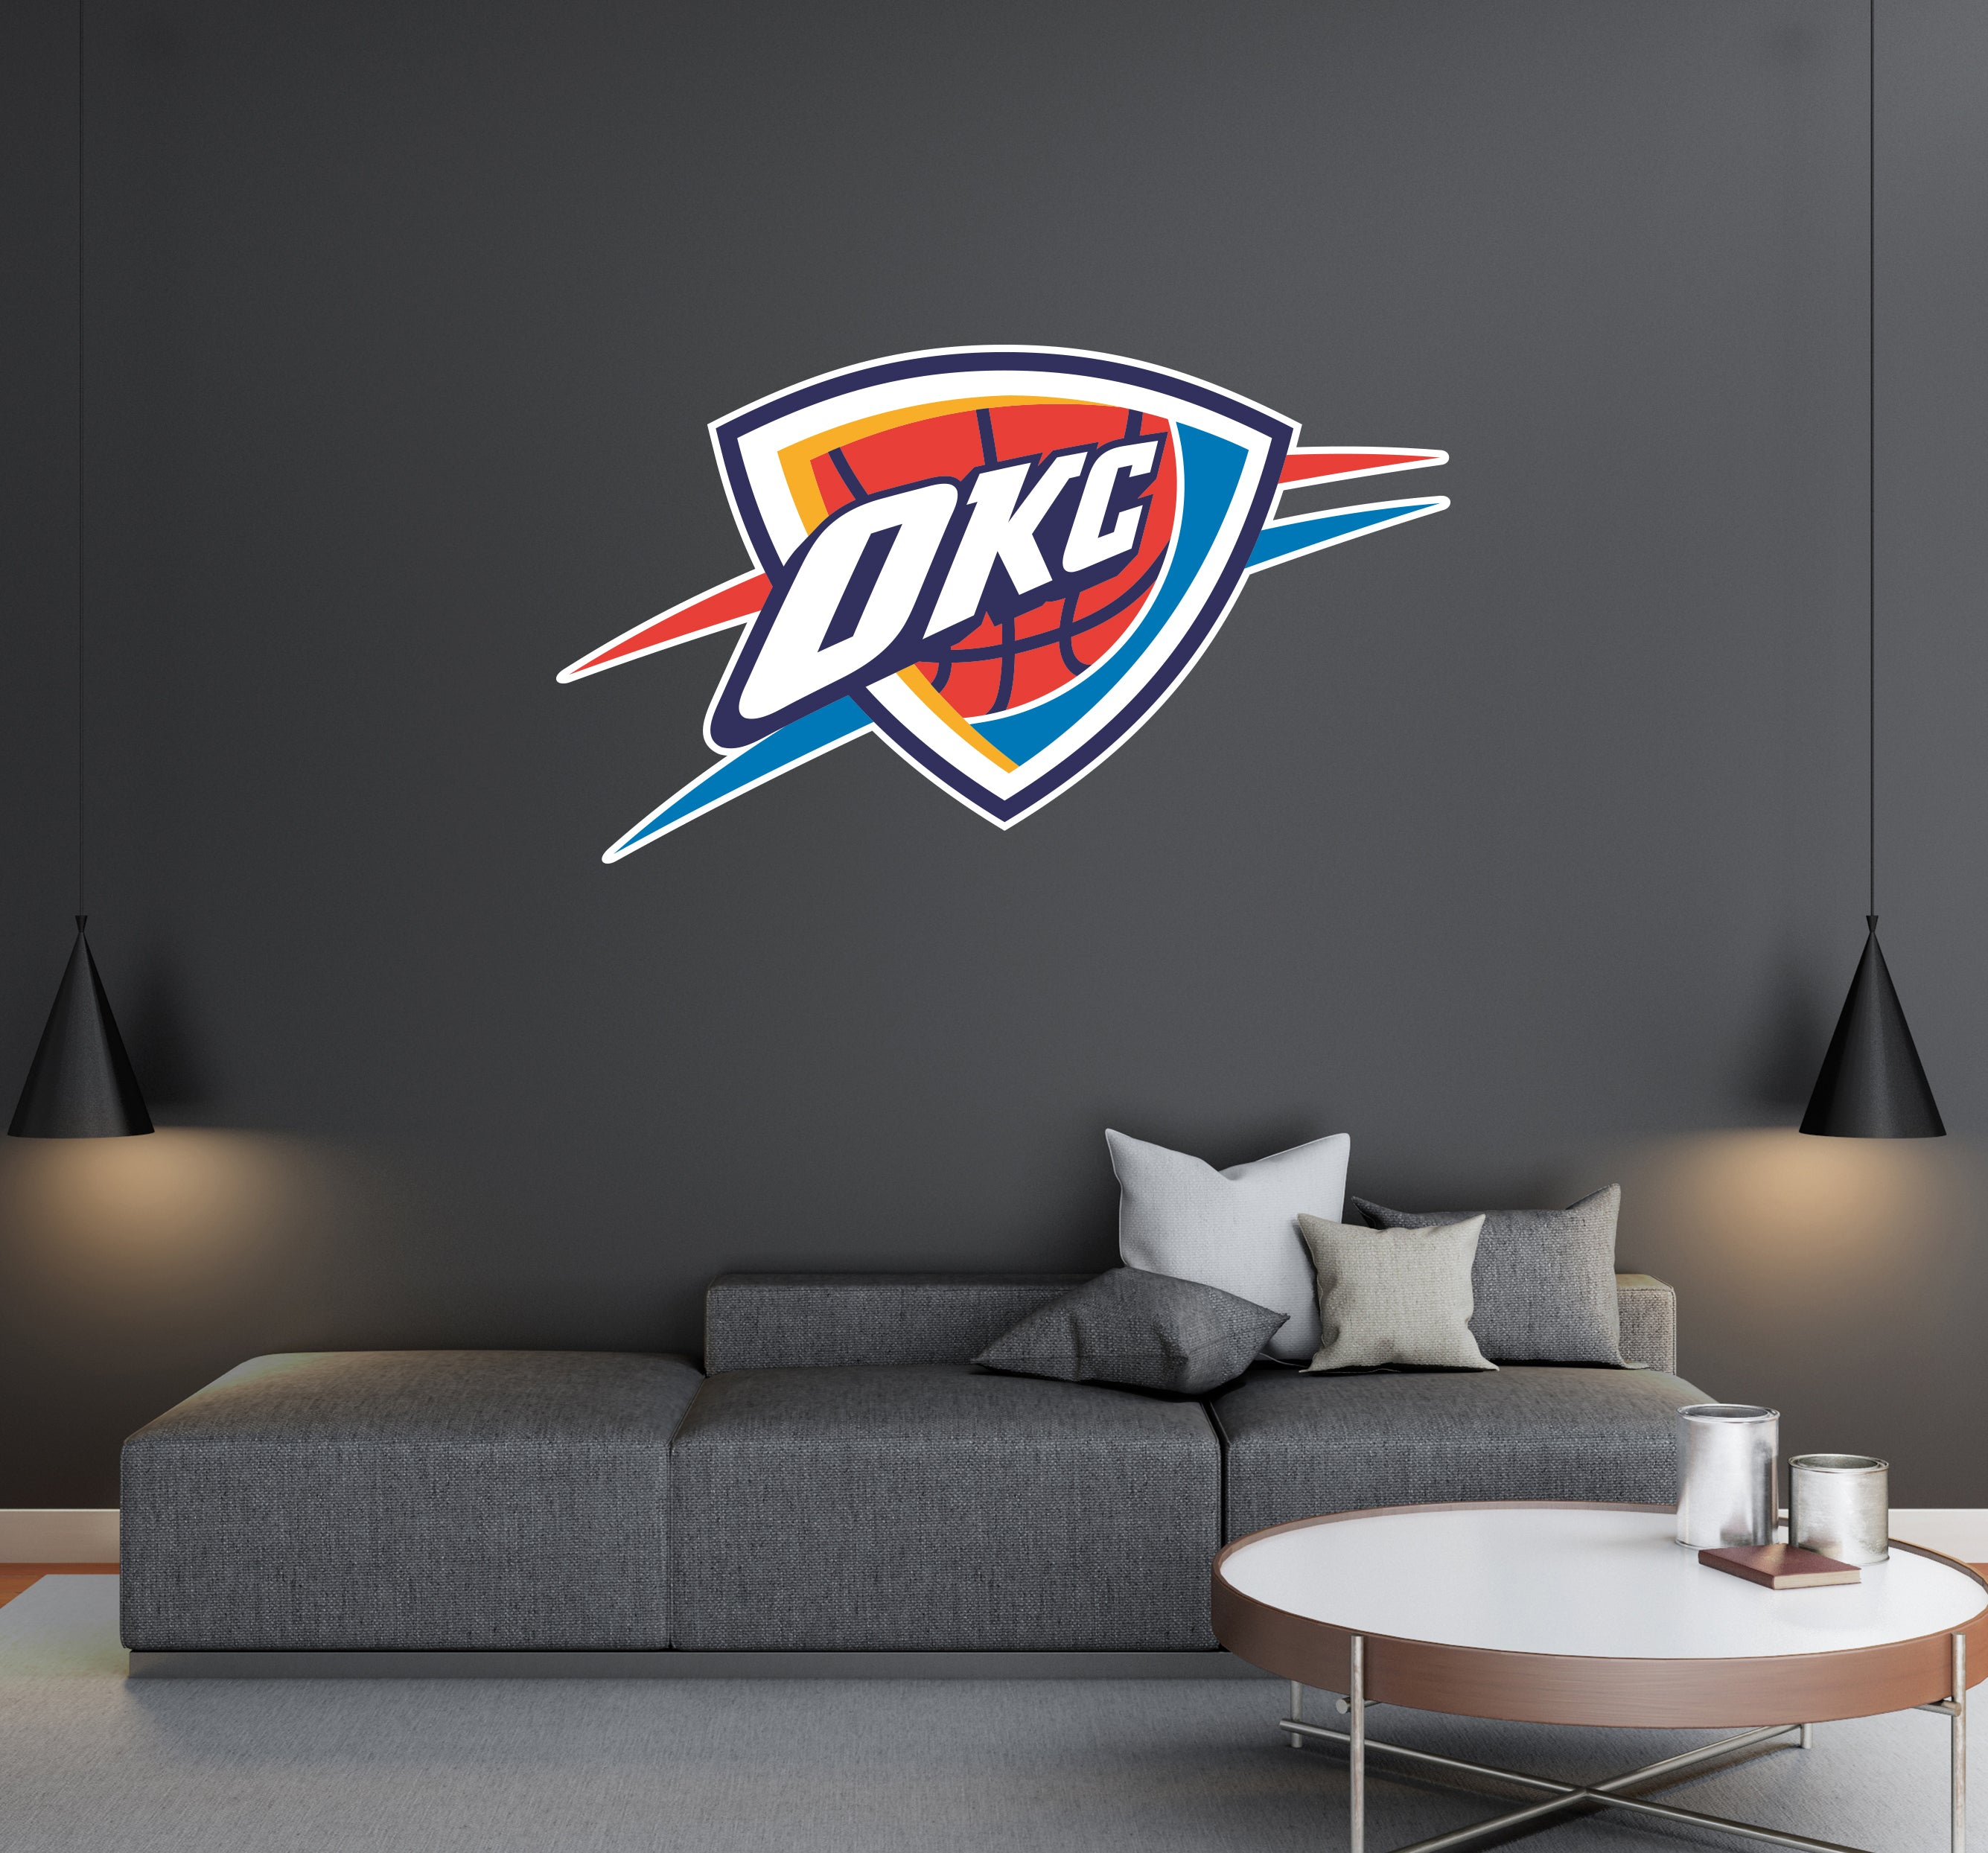 Oklahoma City Thunder Basketball Team Logo - Wall Decal Removable & Reusable For Home Bedroom